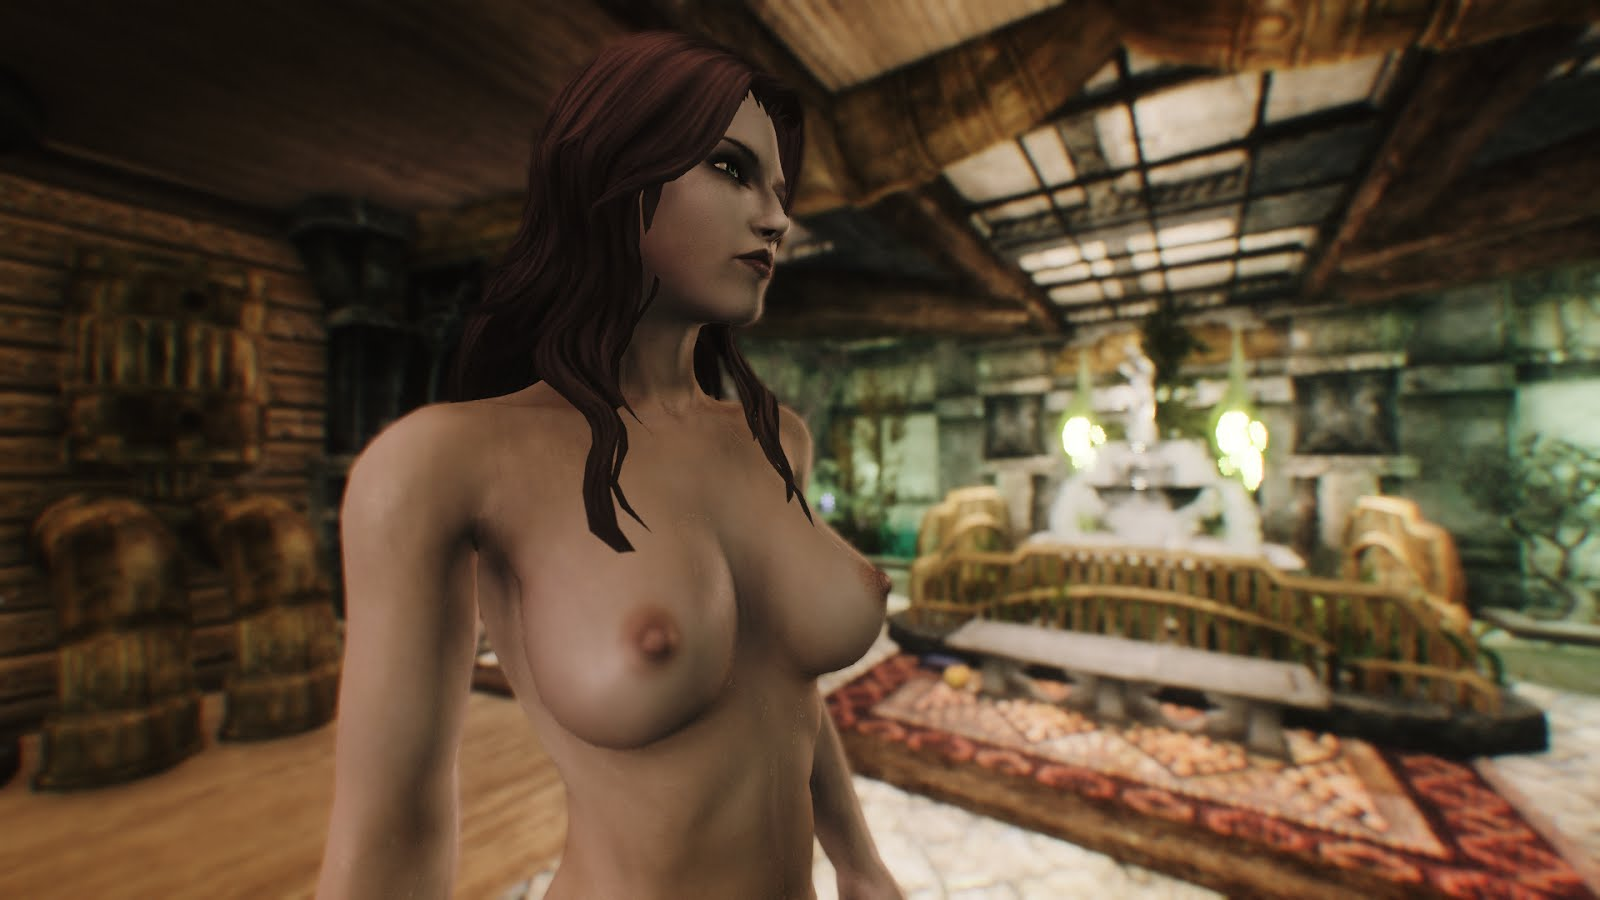 Idea and the elder scrolls nude mods almost